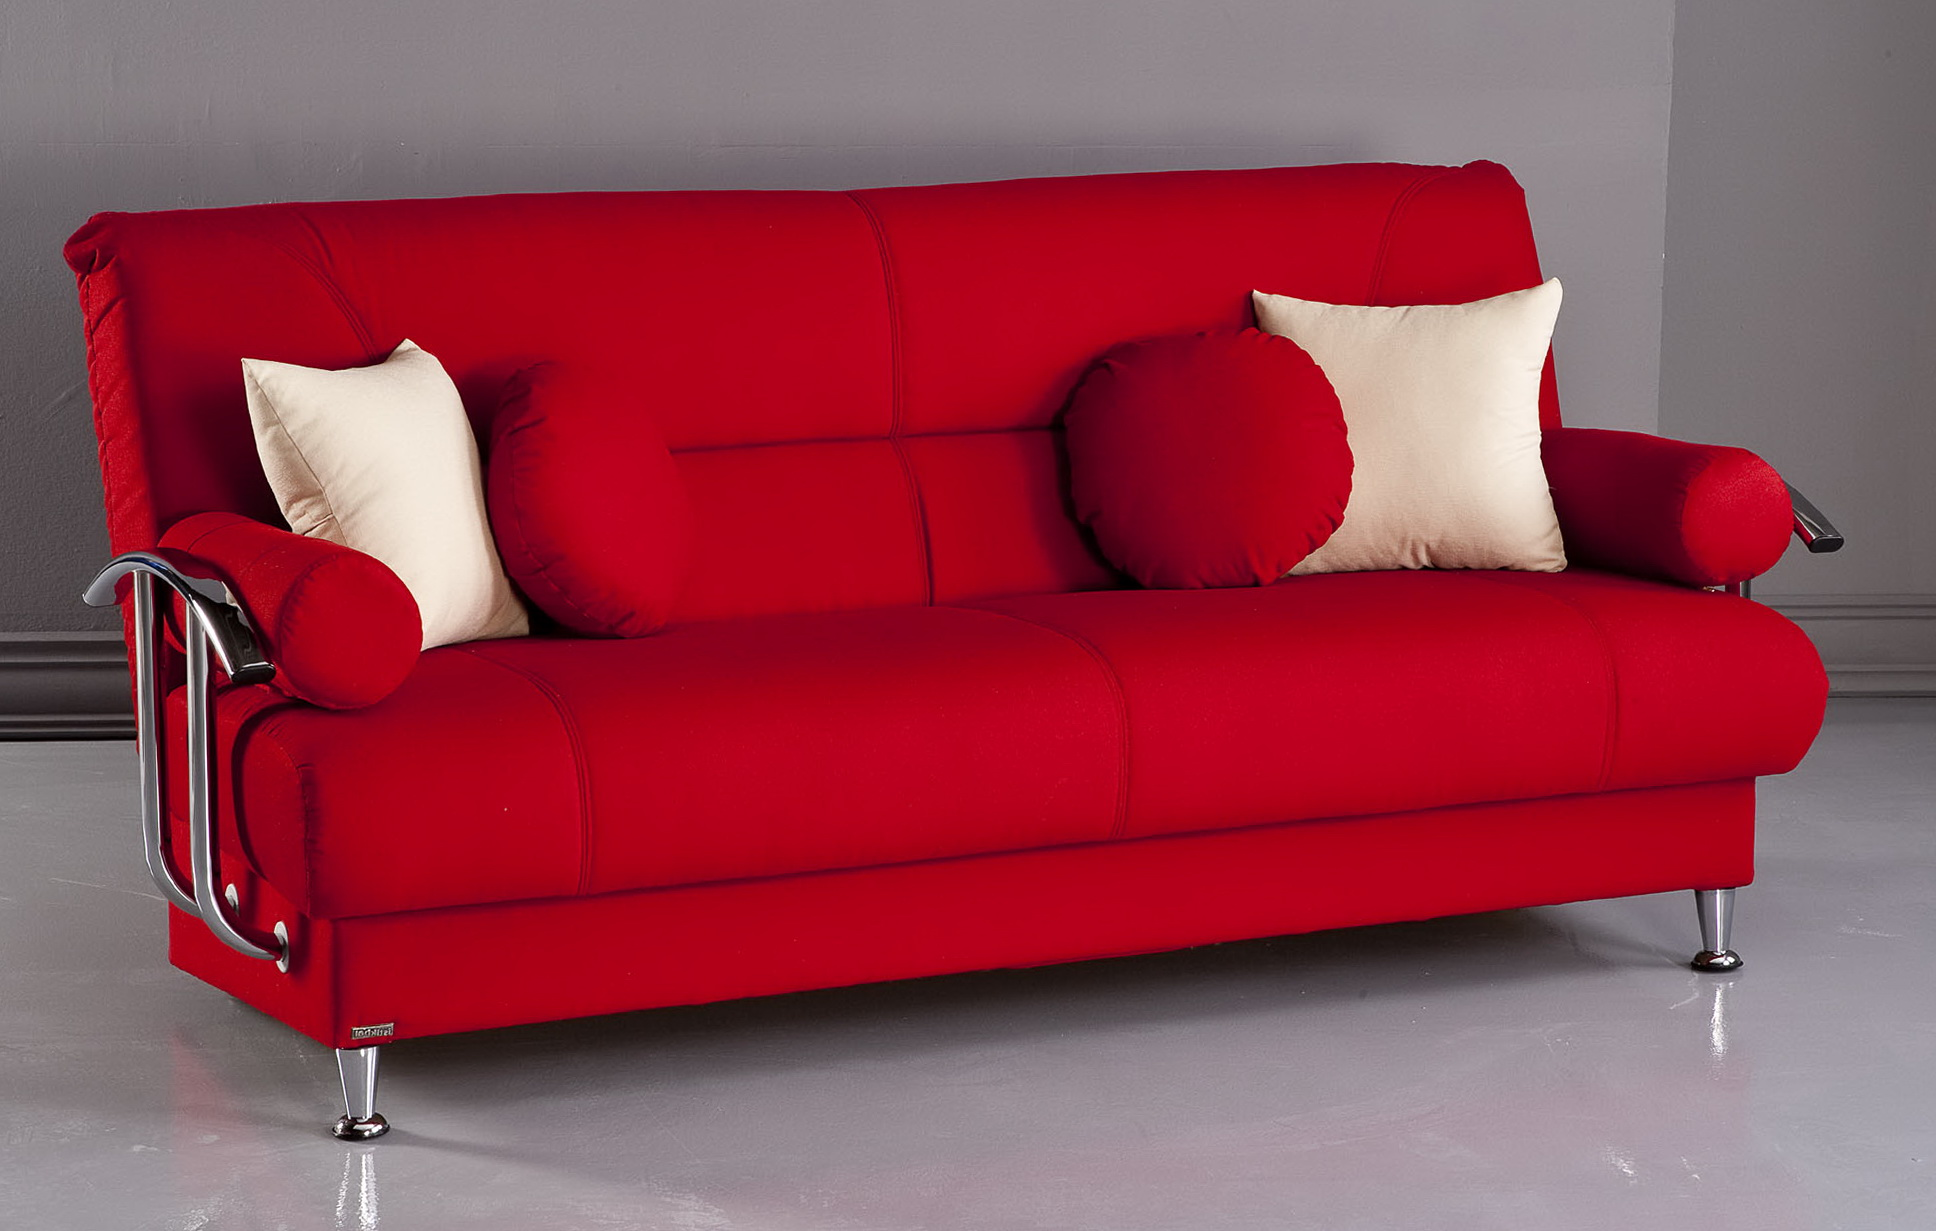 Mainstays Contempo Futon Sofa Bed